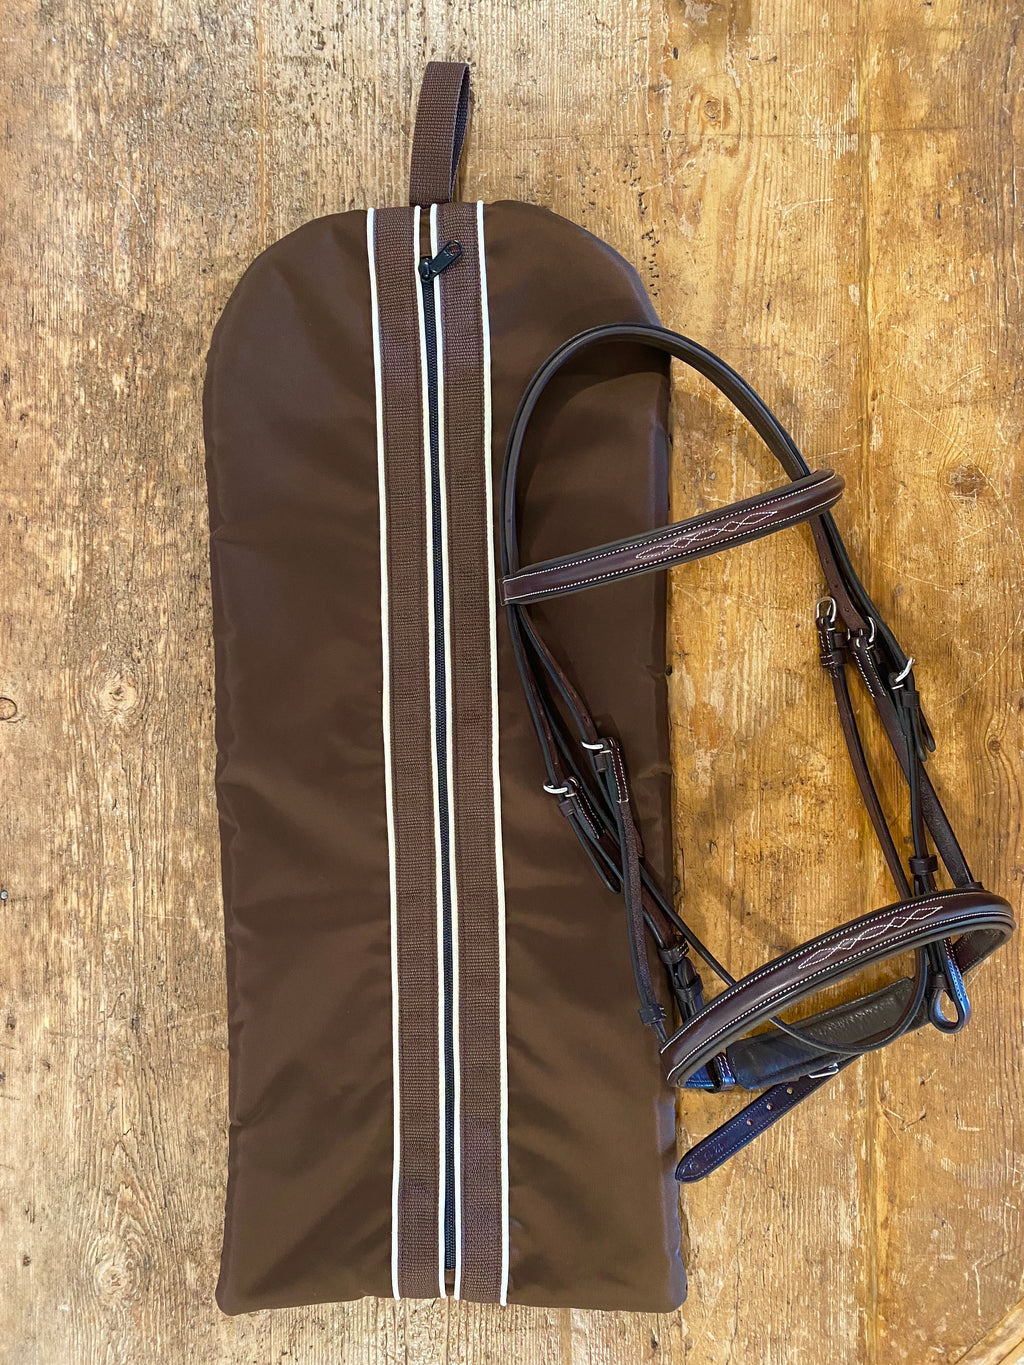 Tally Ho Custom Fleece Lined Bridle Bag